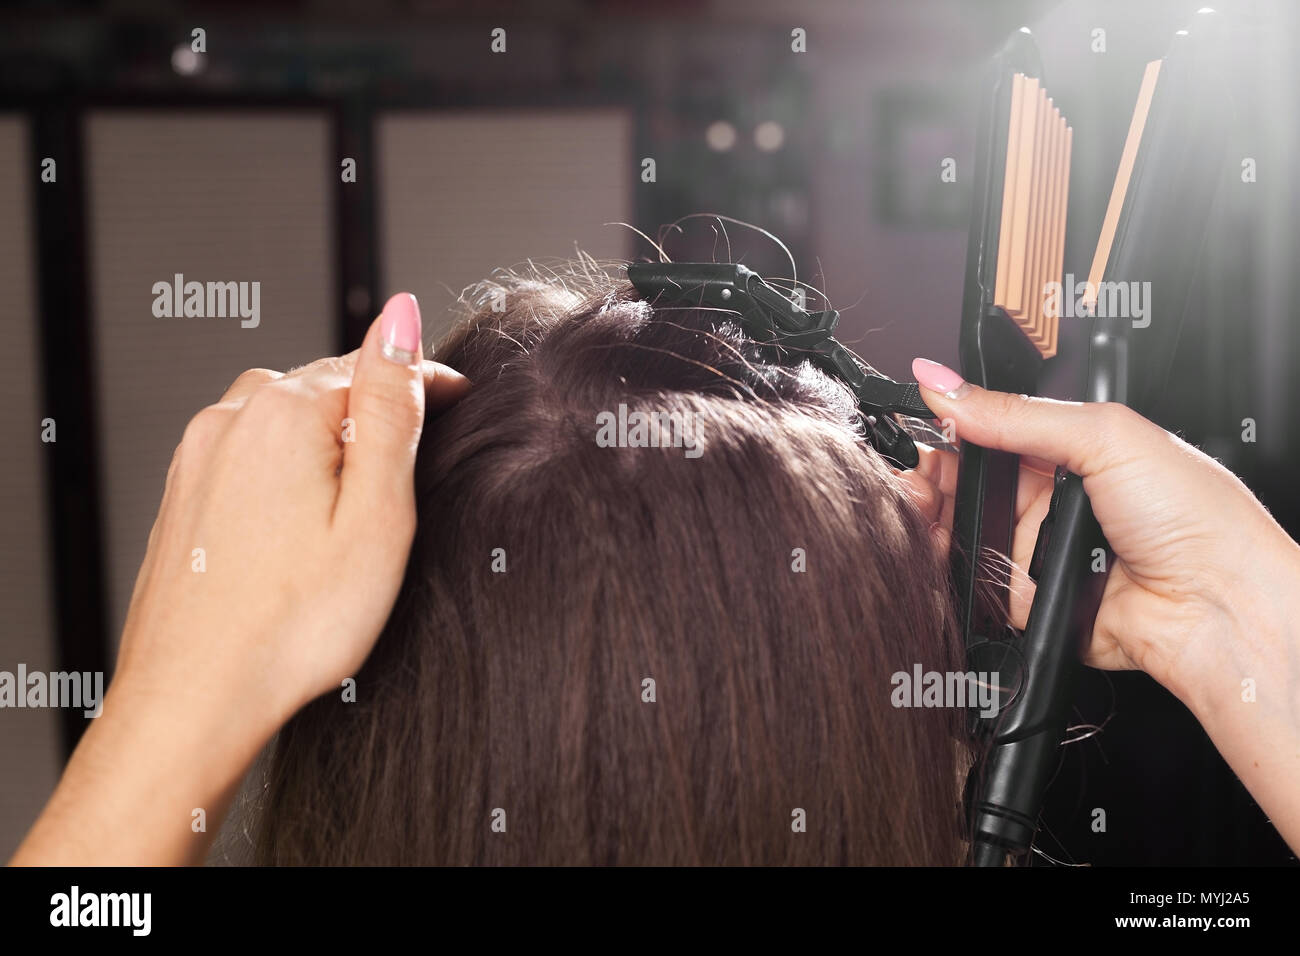 hairdresser clipping hair of a model - Stock Image